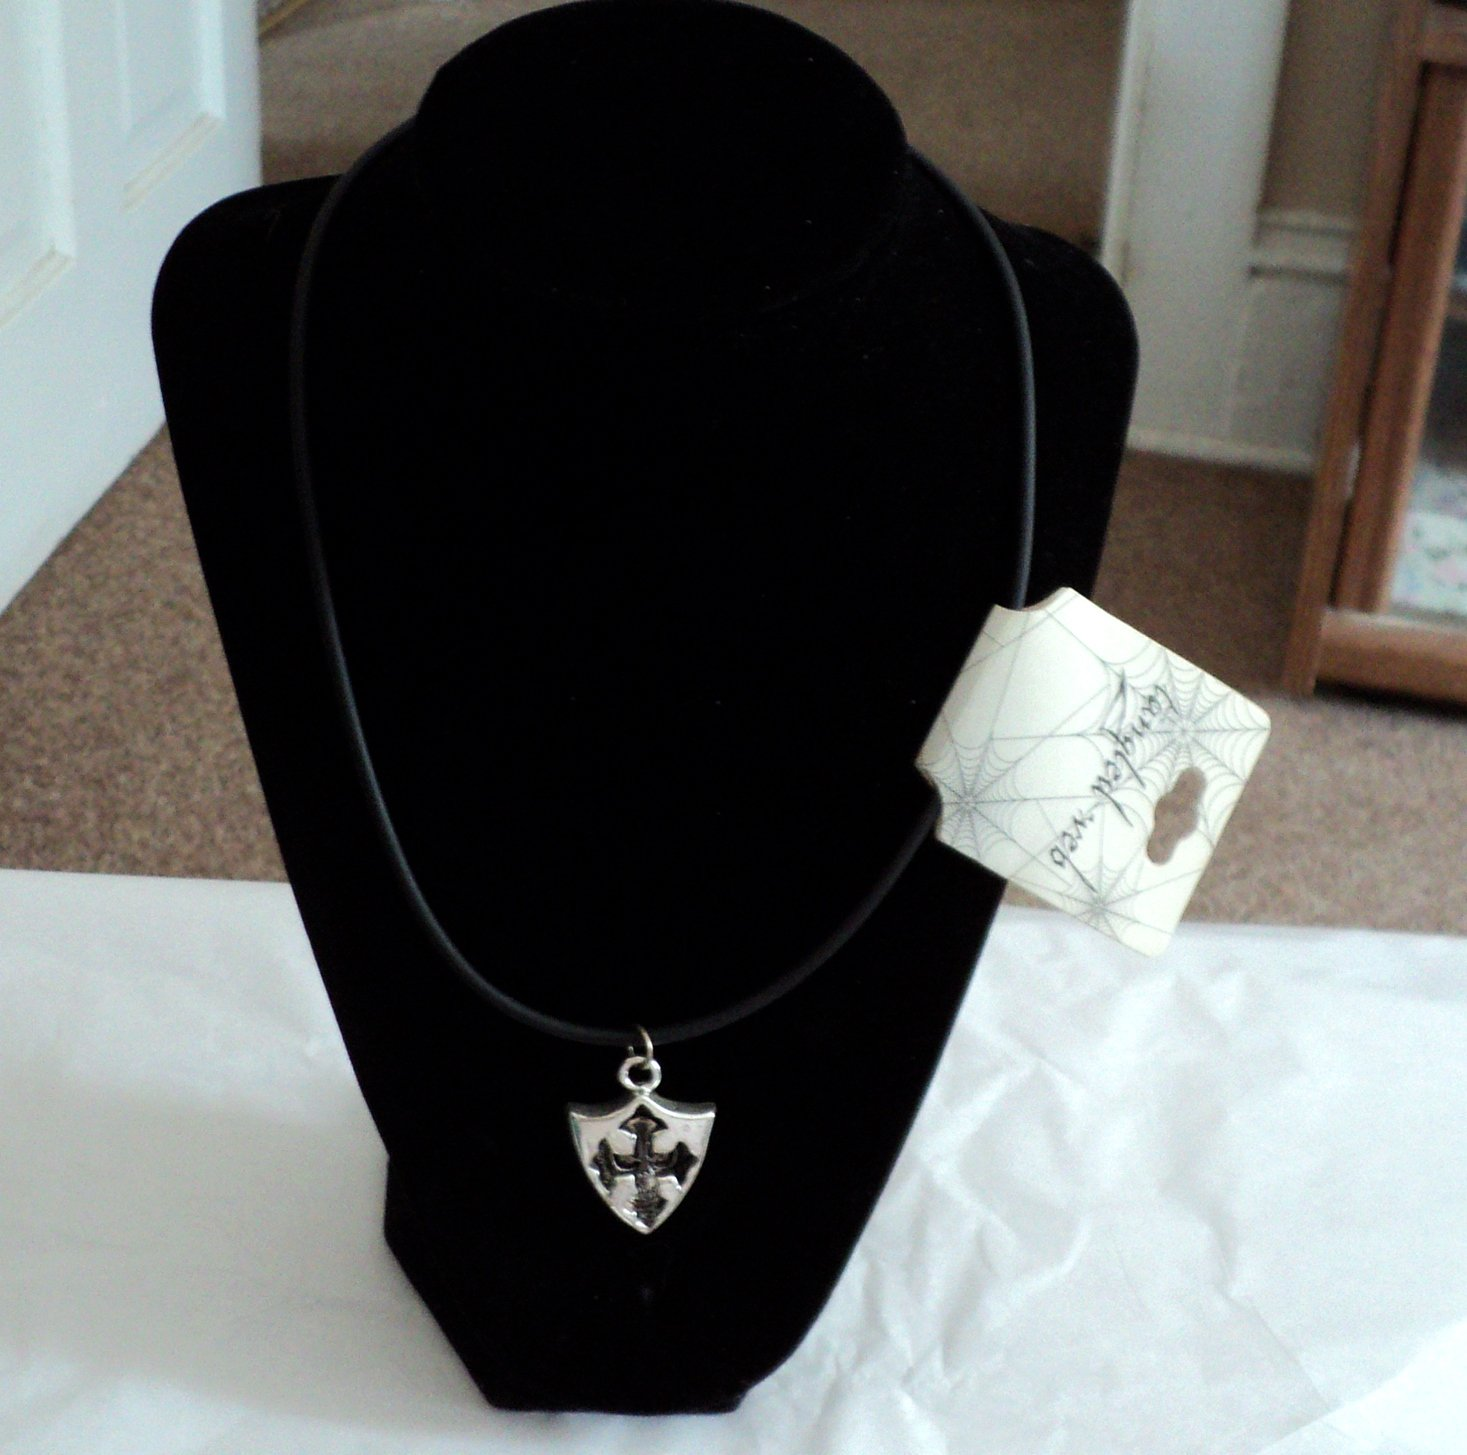 Tangled Web Men's Silver Skull in Arrow Head Pendant on Black Cord Necklace  #00242